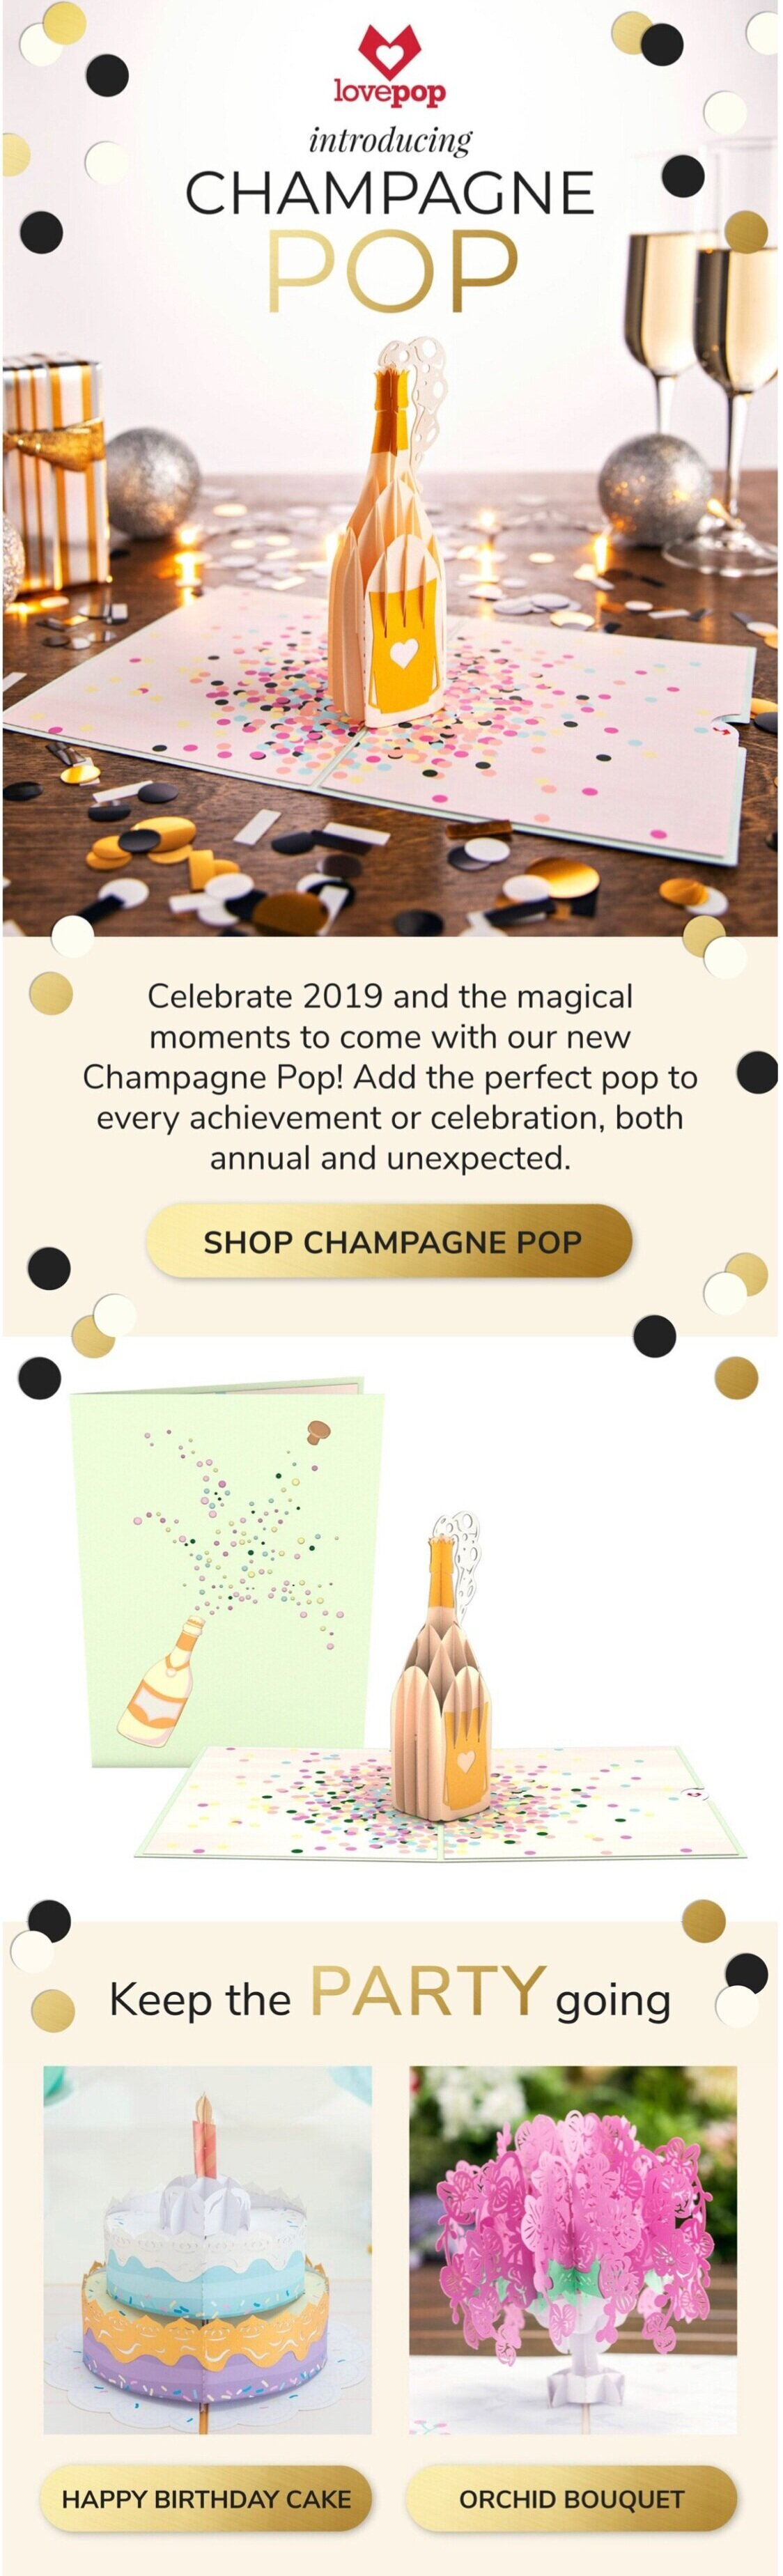 Lovepop Cards new design email launch:  Champagne Pop